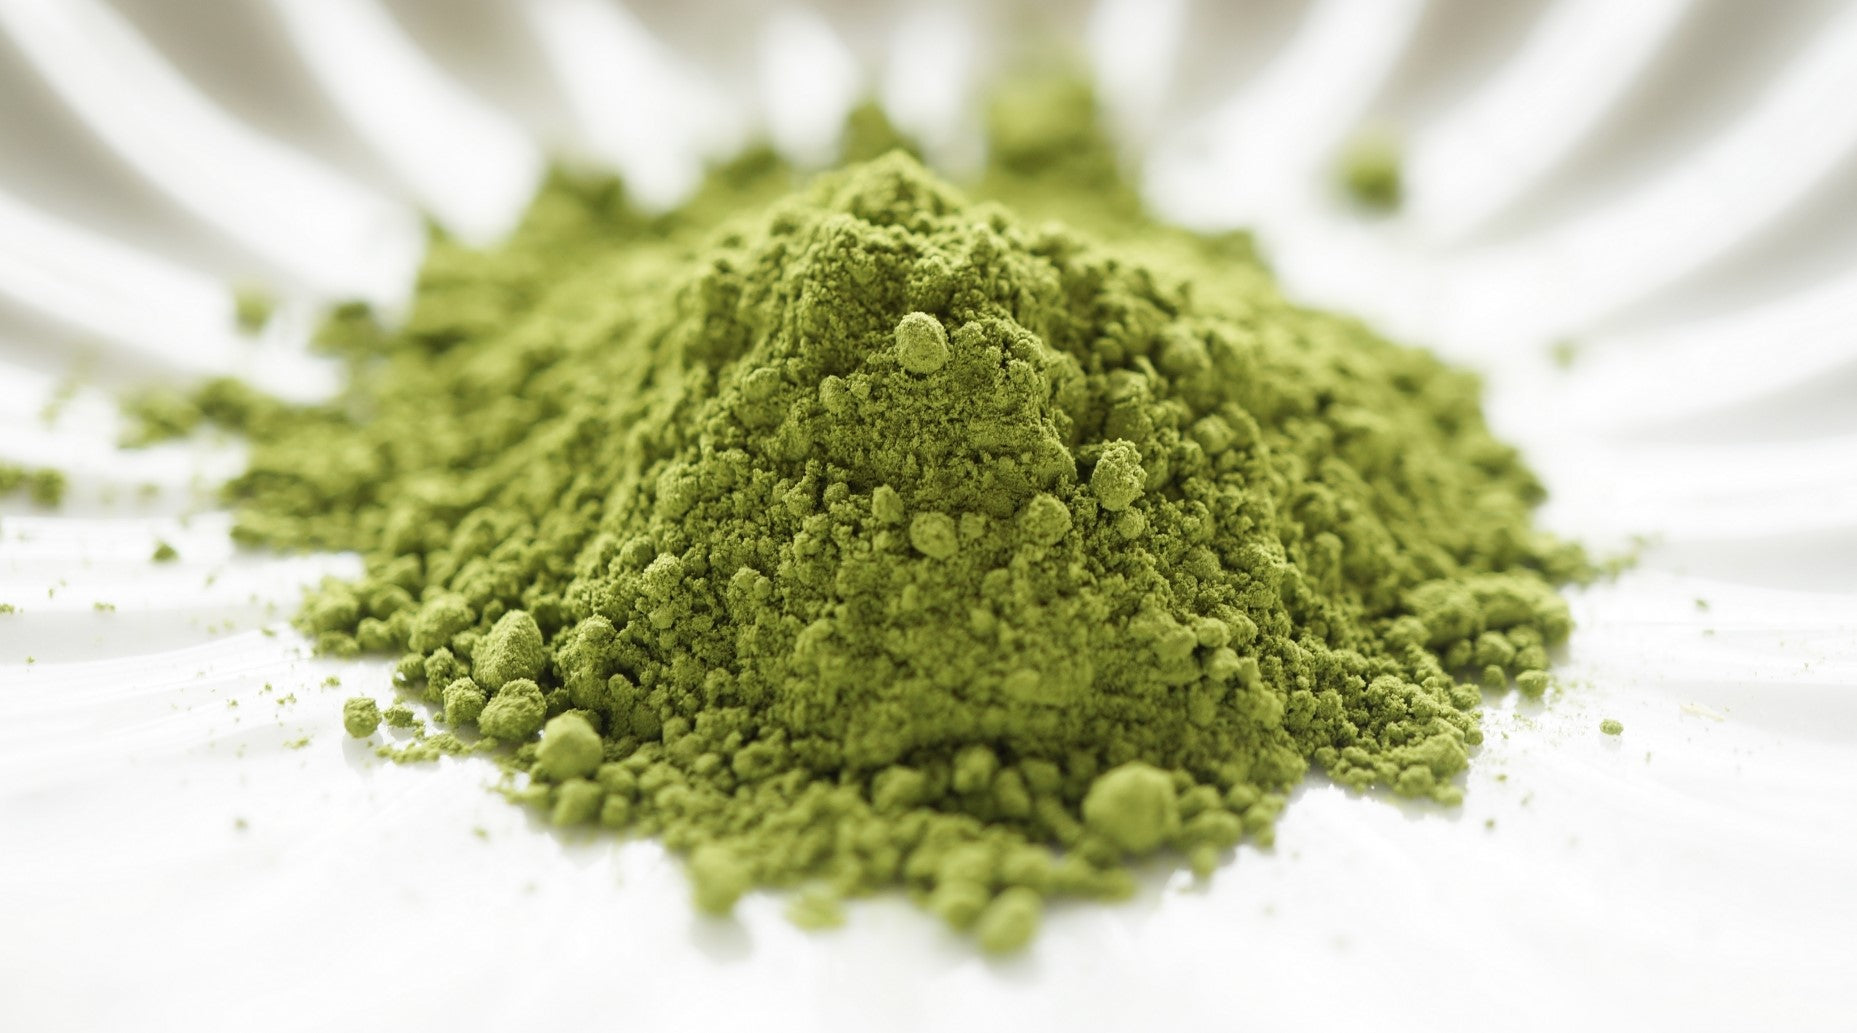 What type of tea is Matcha?